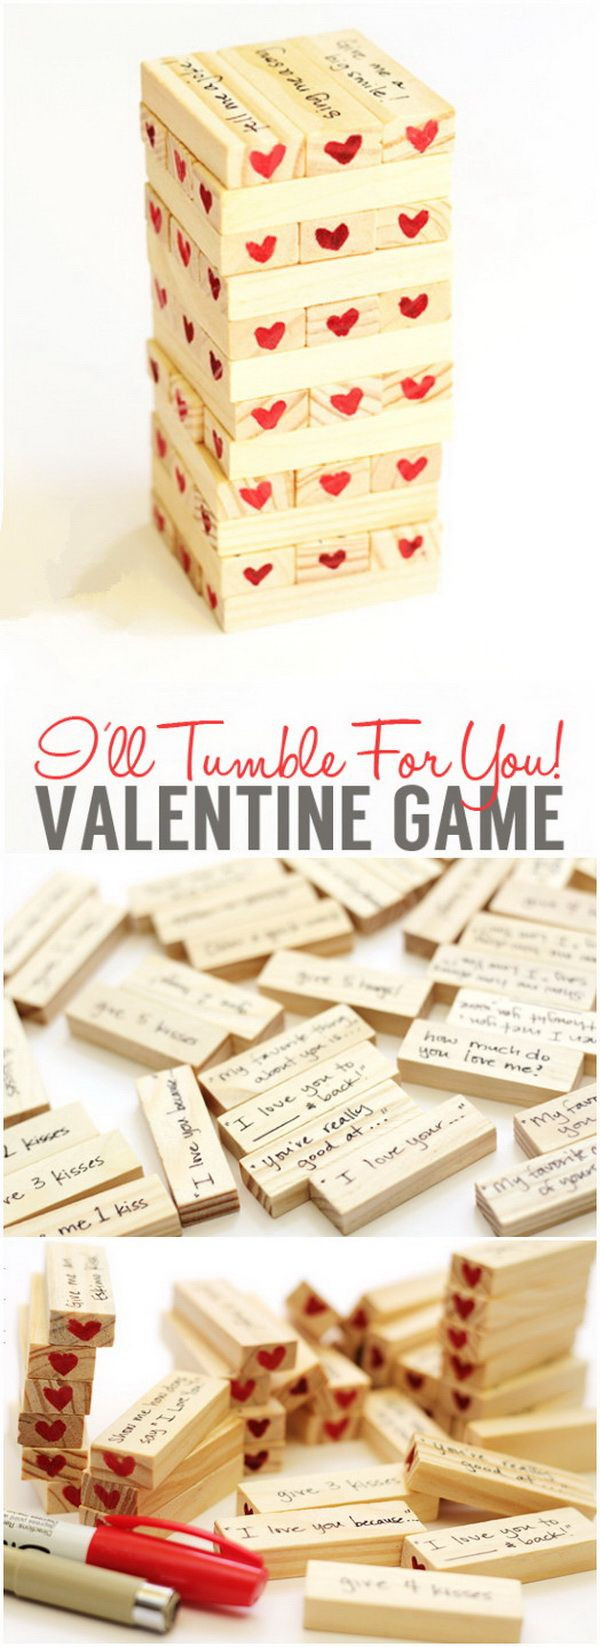 Valentine Homemade Gift Ideas For Boyfriend  Valentine's Day Hearty Tumble Game Another fun t idea